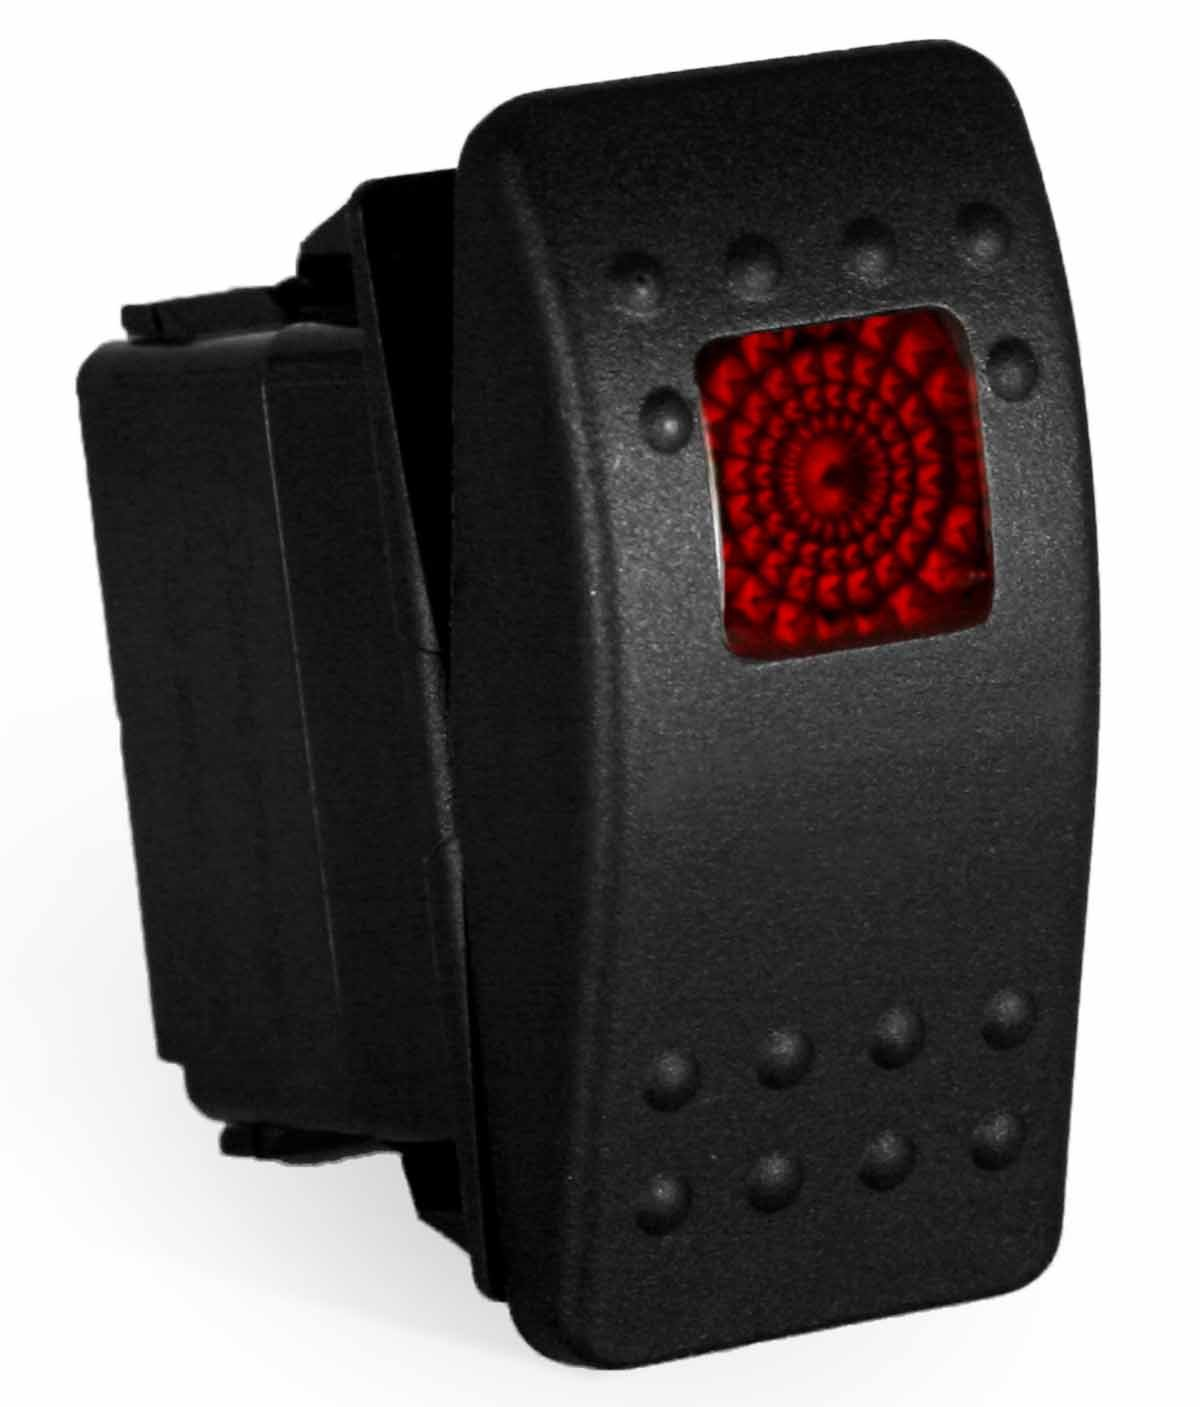 Amazoncom Carling Rocker Switch Illuminated Red V1D1 Contura